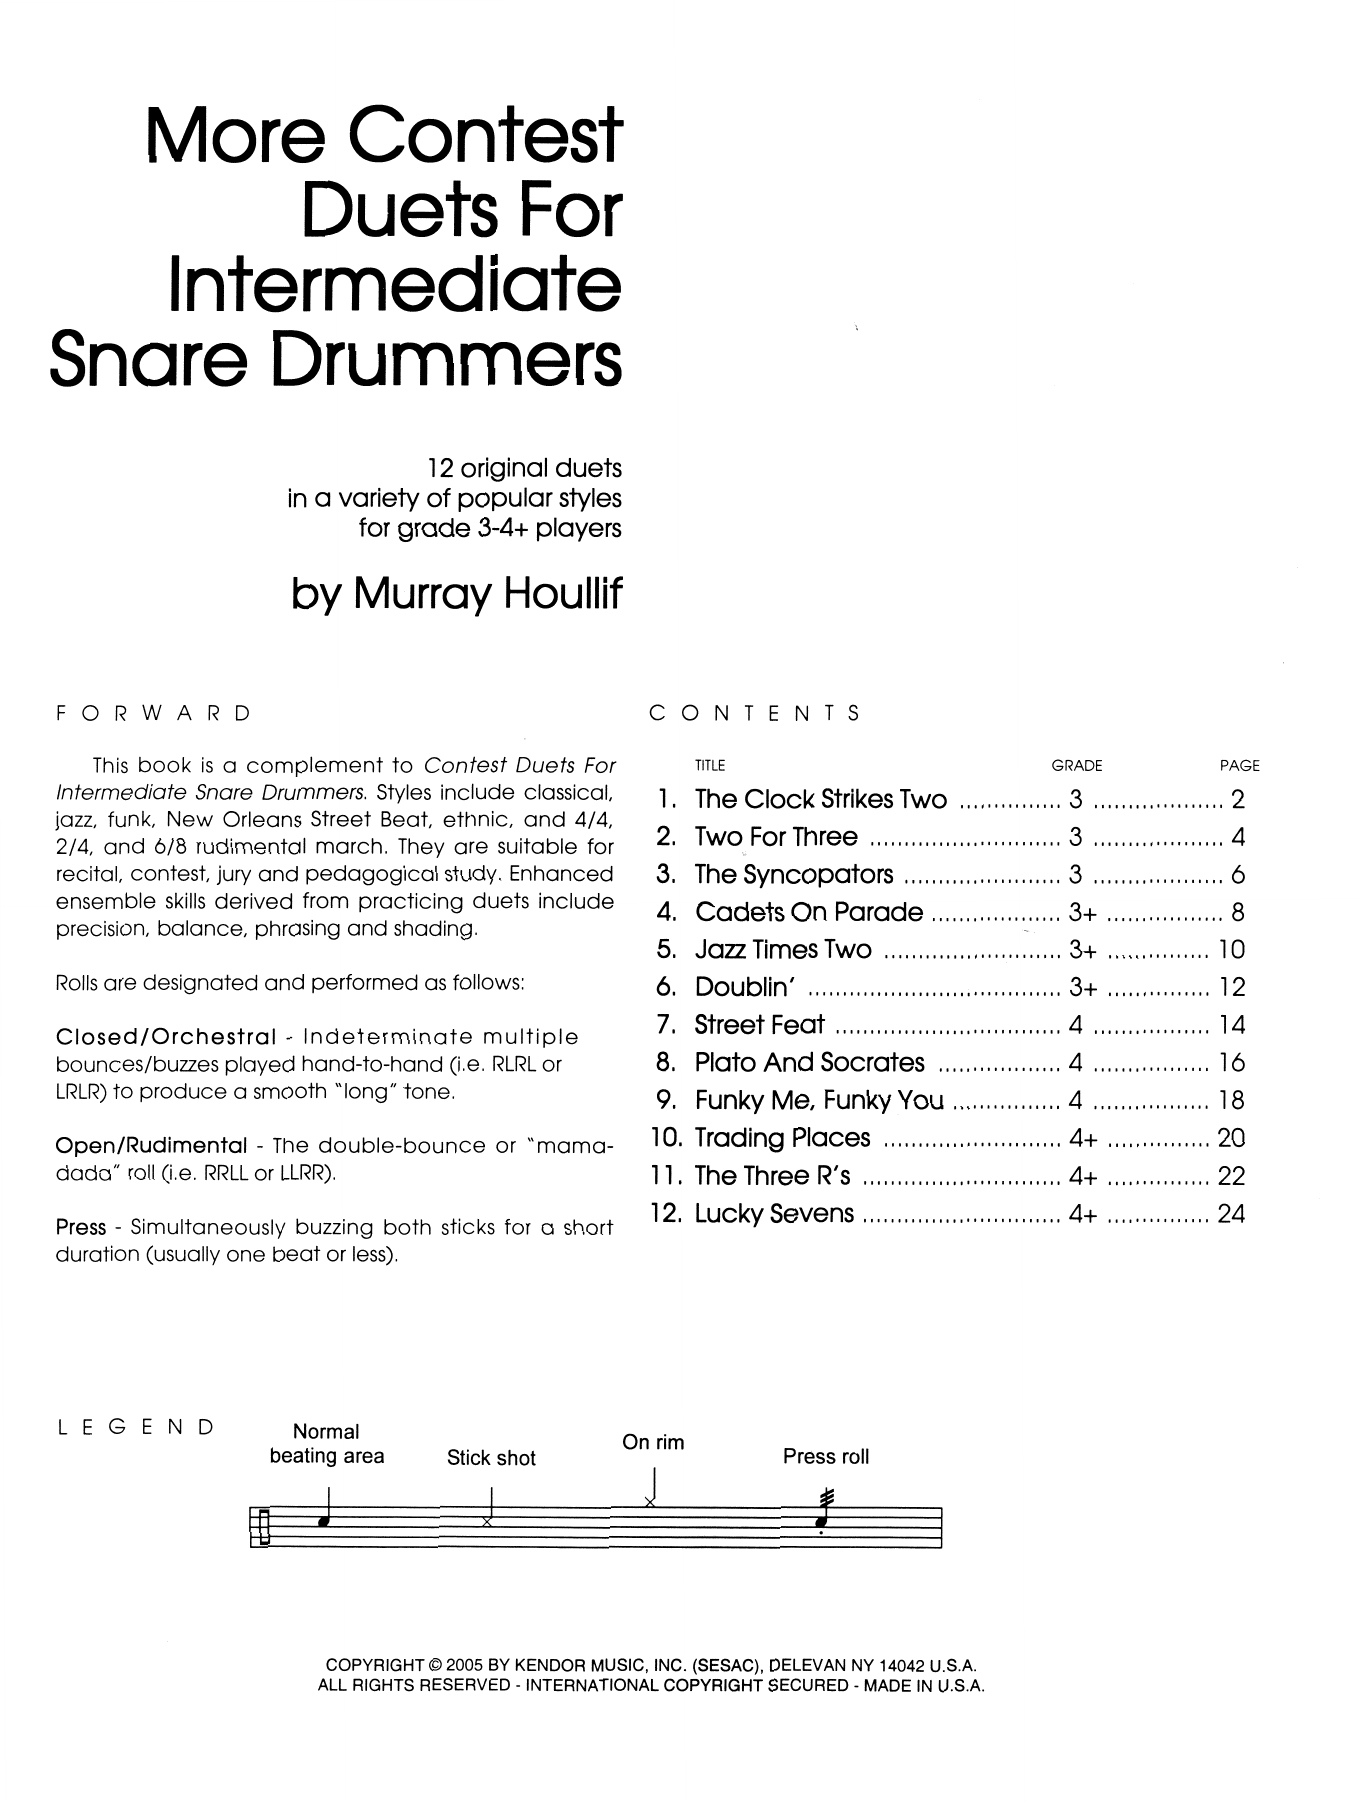 More Contest Duets For Intermediate Snare Drummers Sheet Music